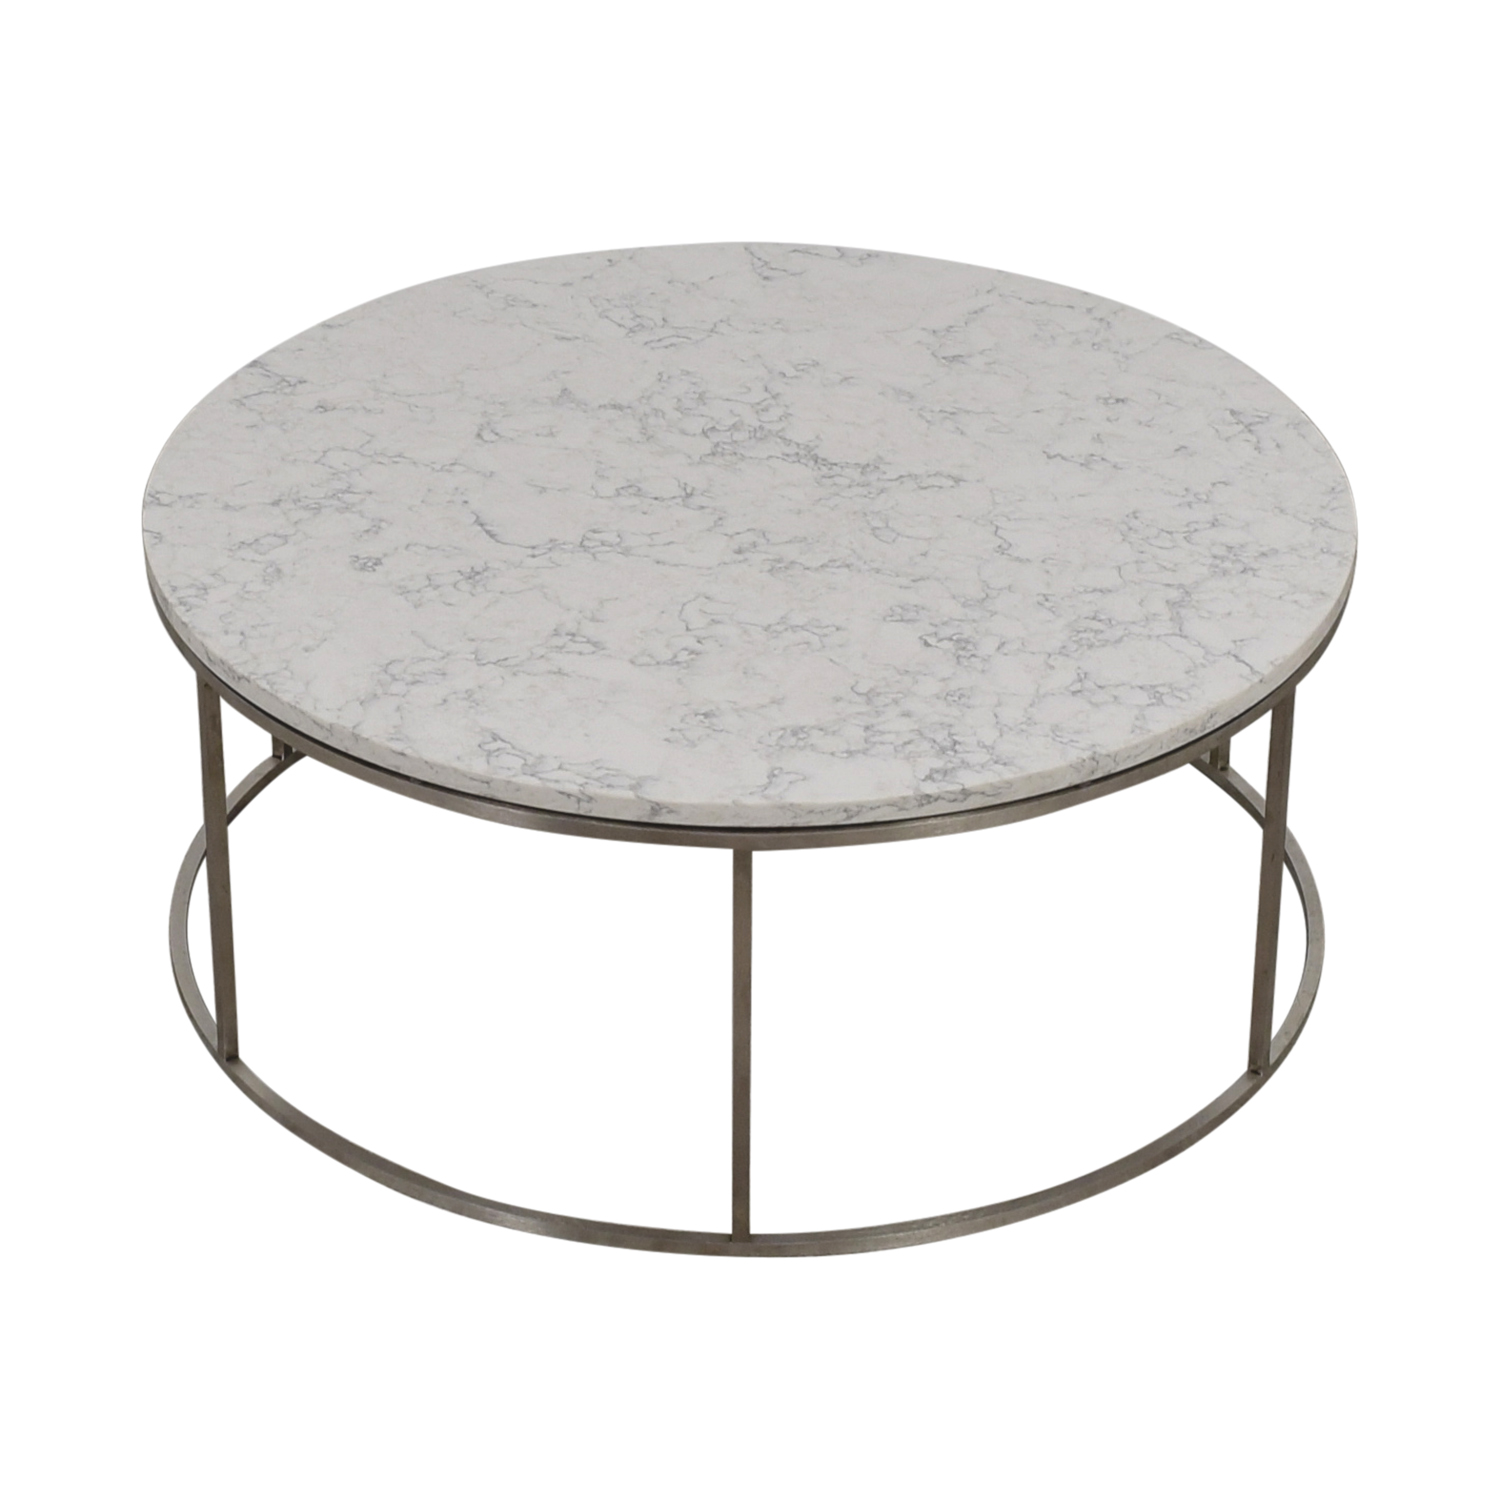 Room & Board Room & Board Round Marble Top Coffee Table for sale